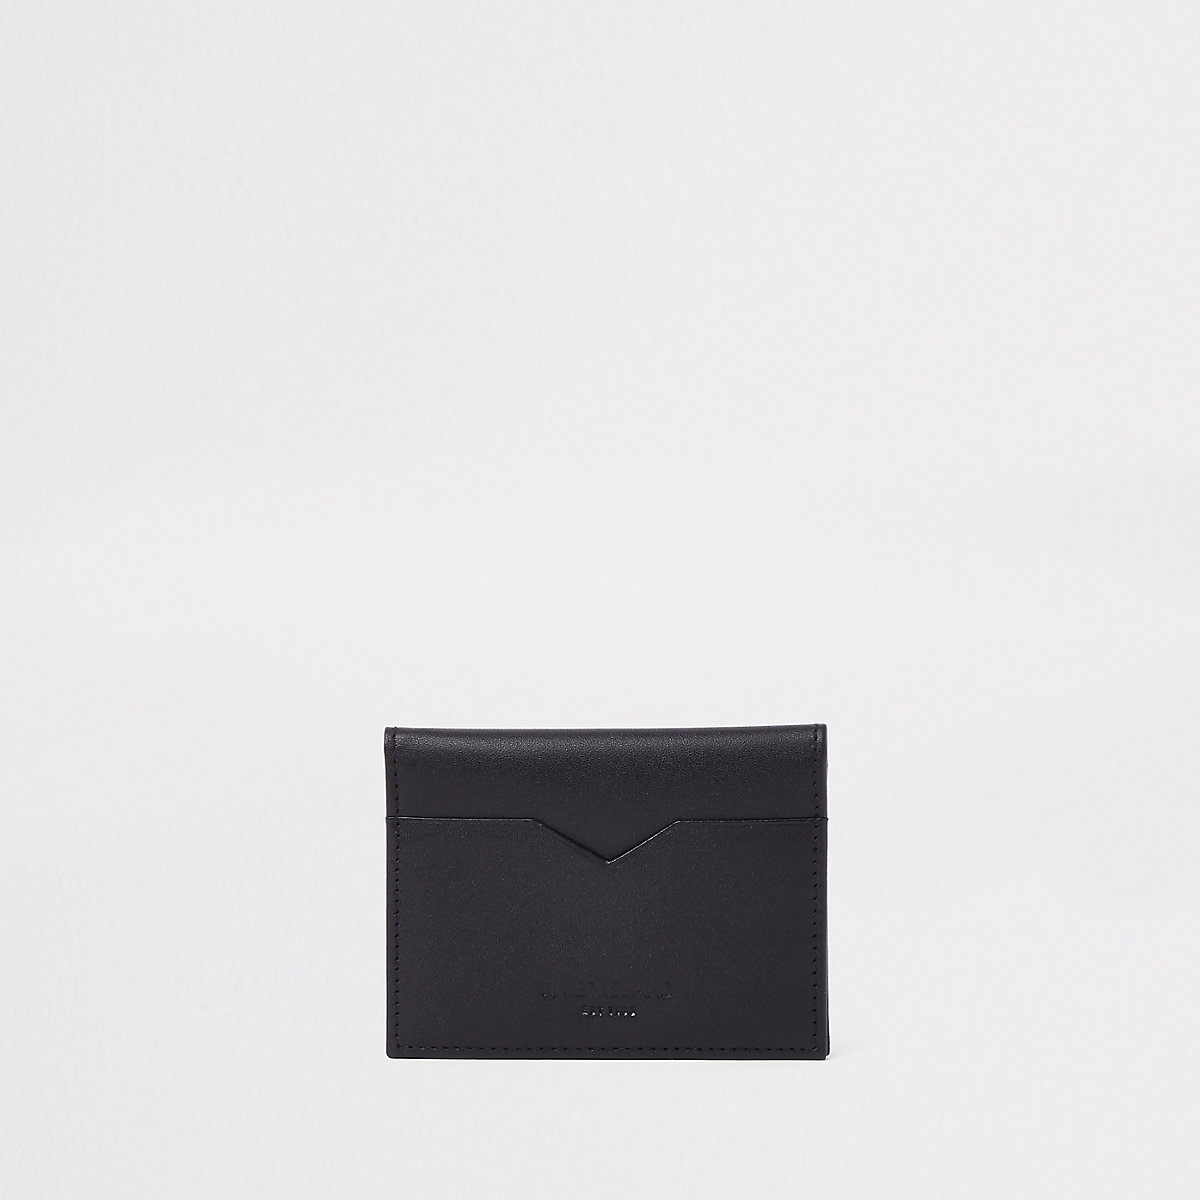 Black leather fold out card holder